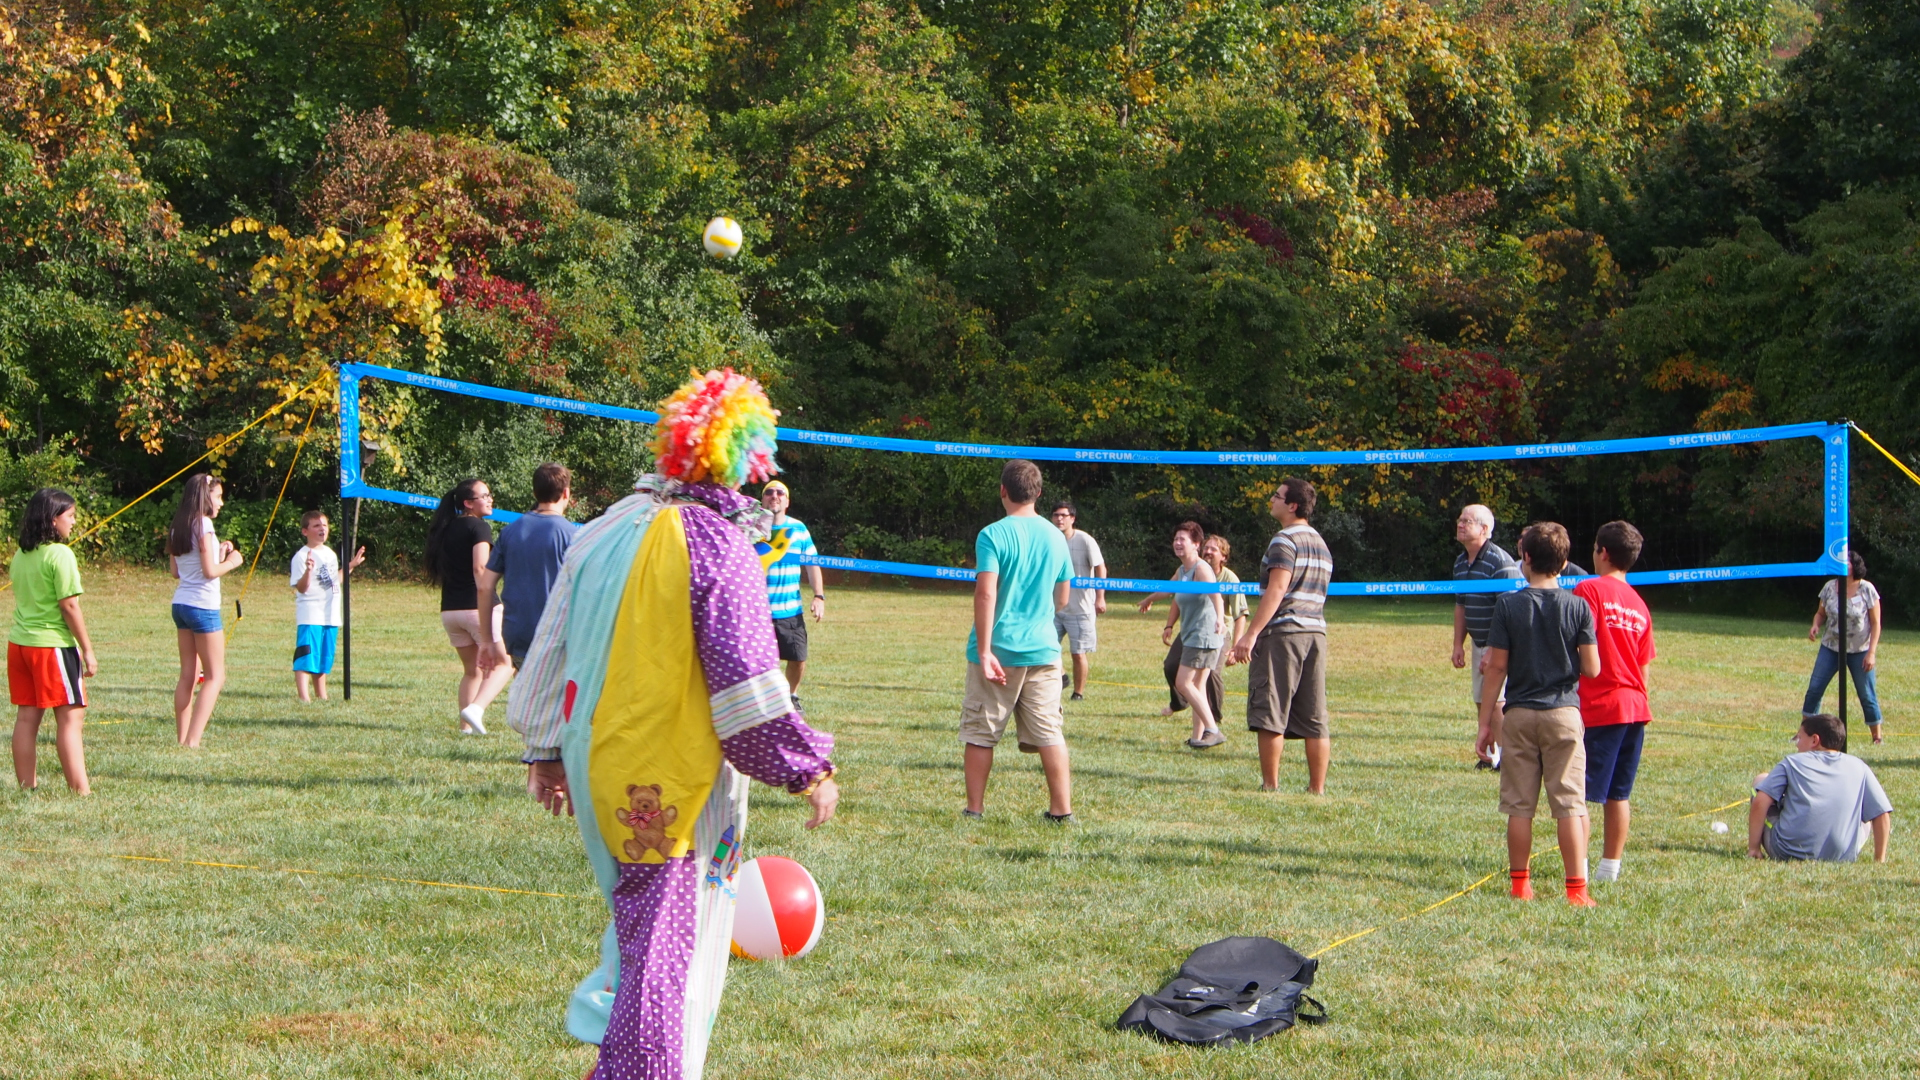 sjn picnic 2014 the clown